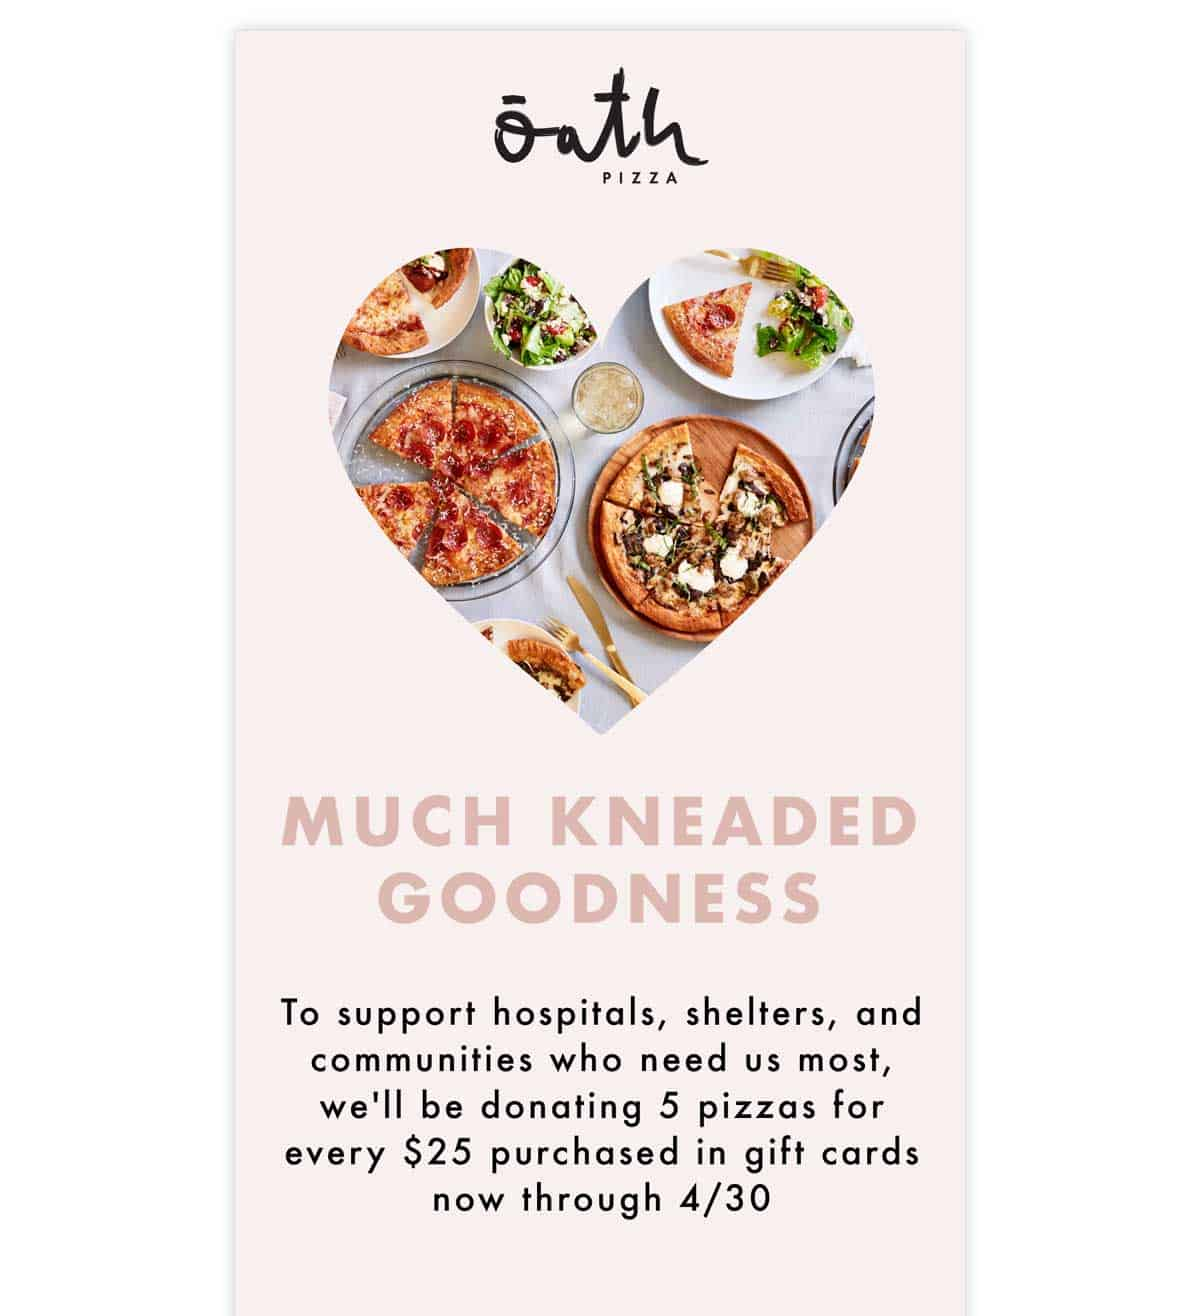 Oath Pizza support email